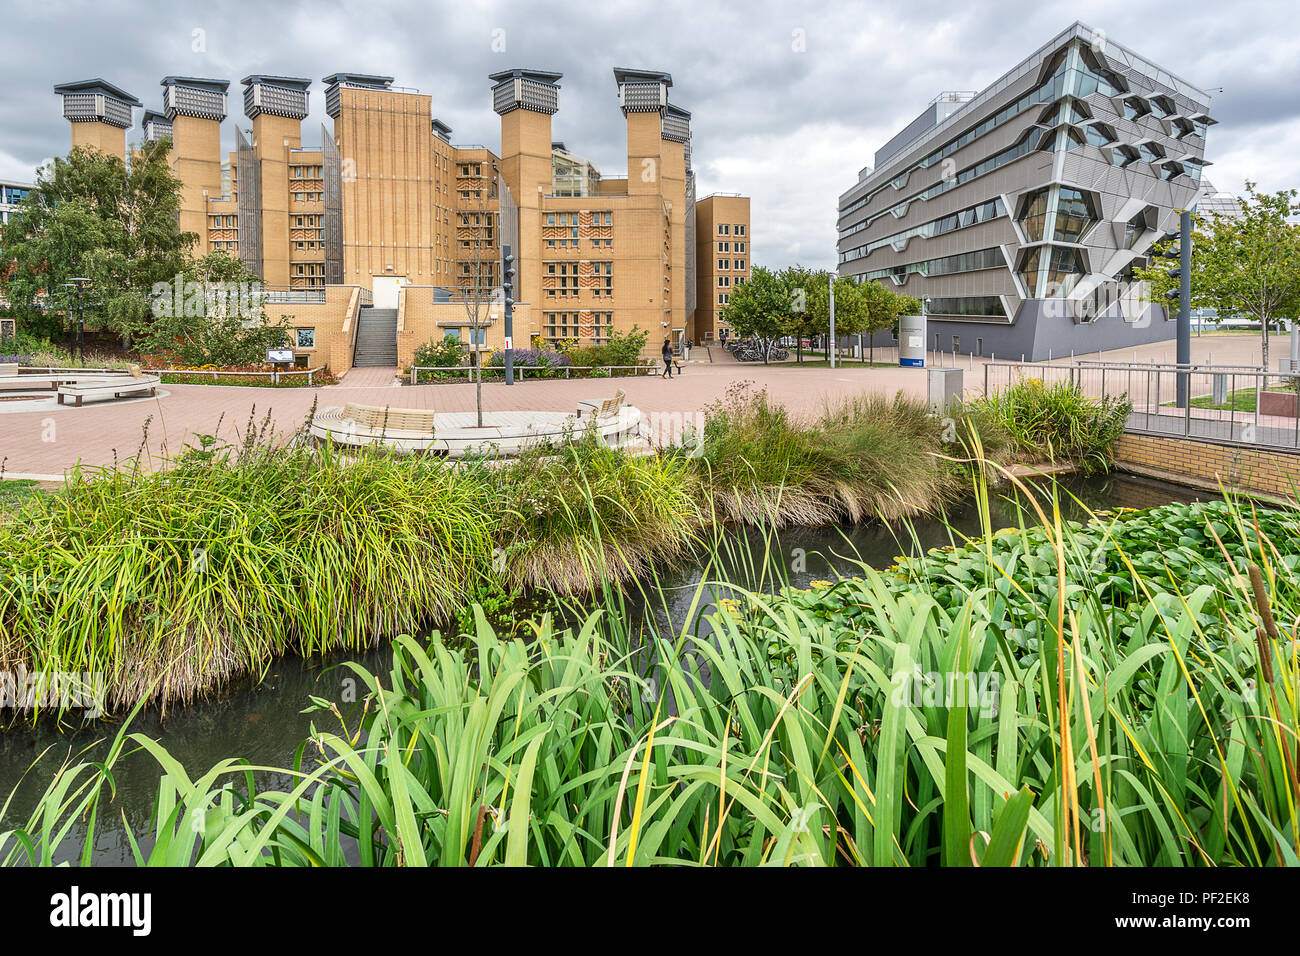 Coventry University Lanchester Library and the Faculty of Engineering and Computing - Stock Image